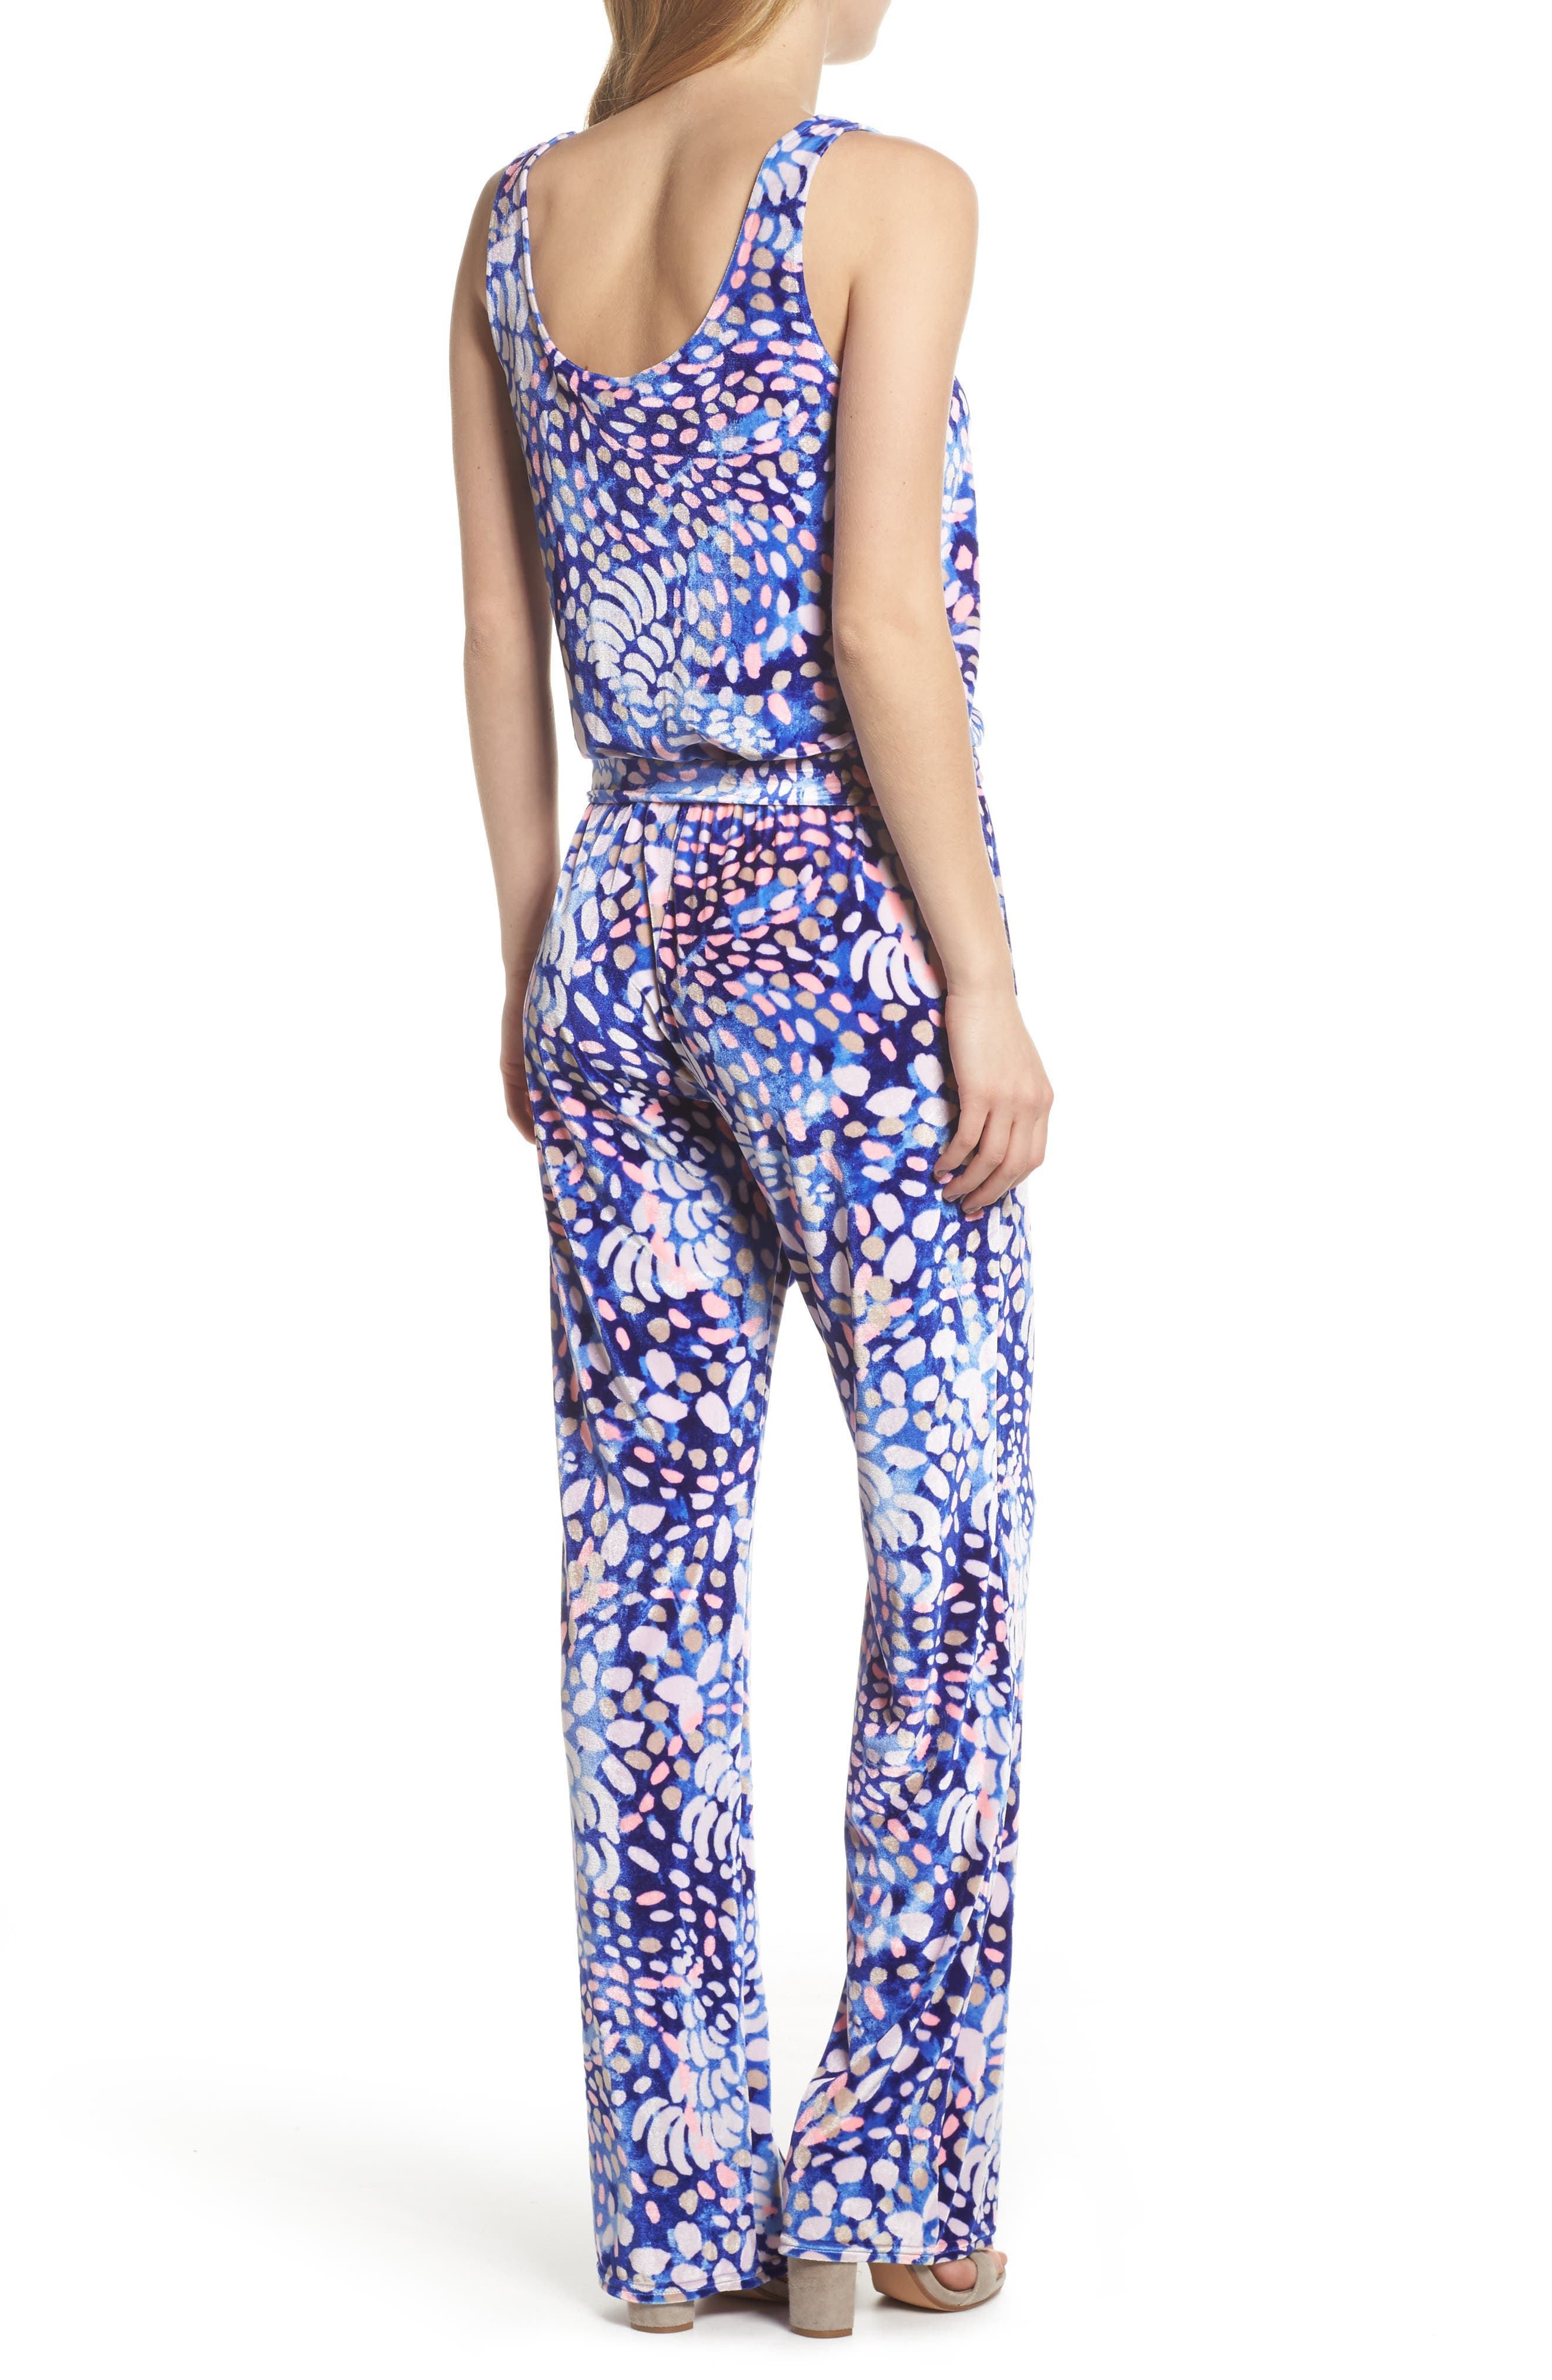 Nena Velour Jumpsuit,                             Alternate thumbnail 2, color,                             400